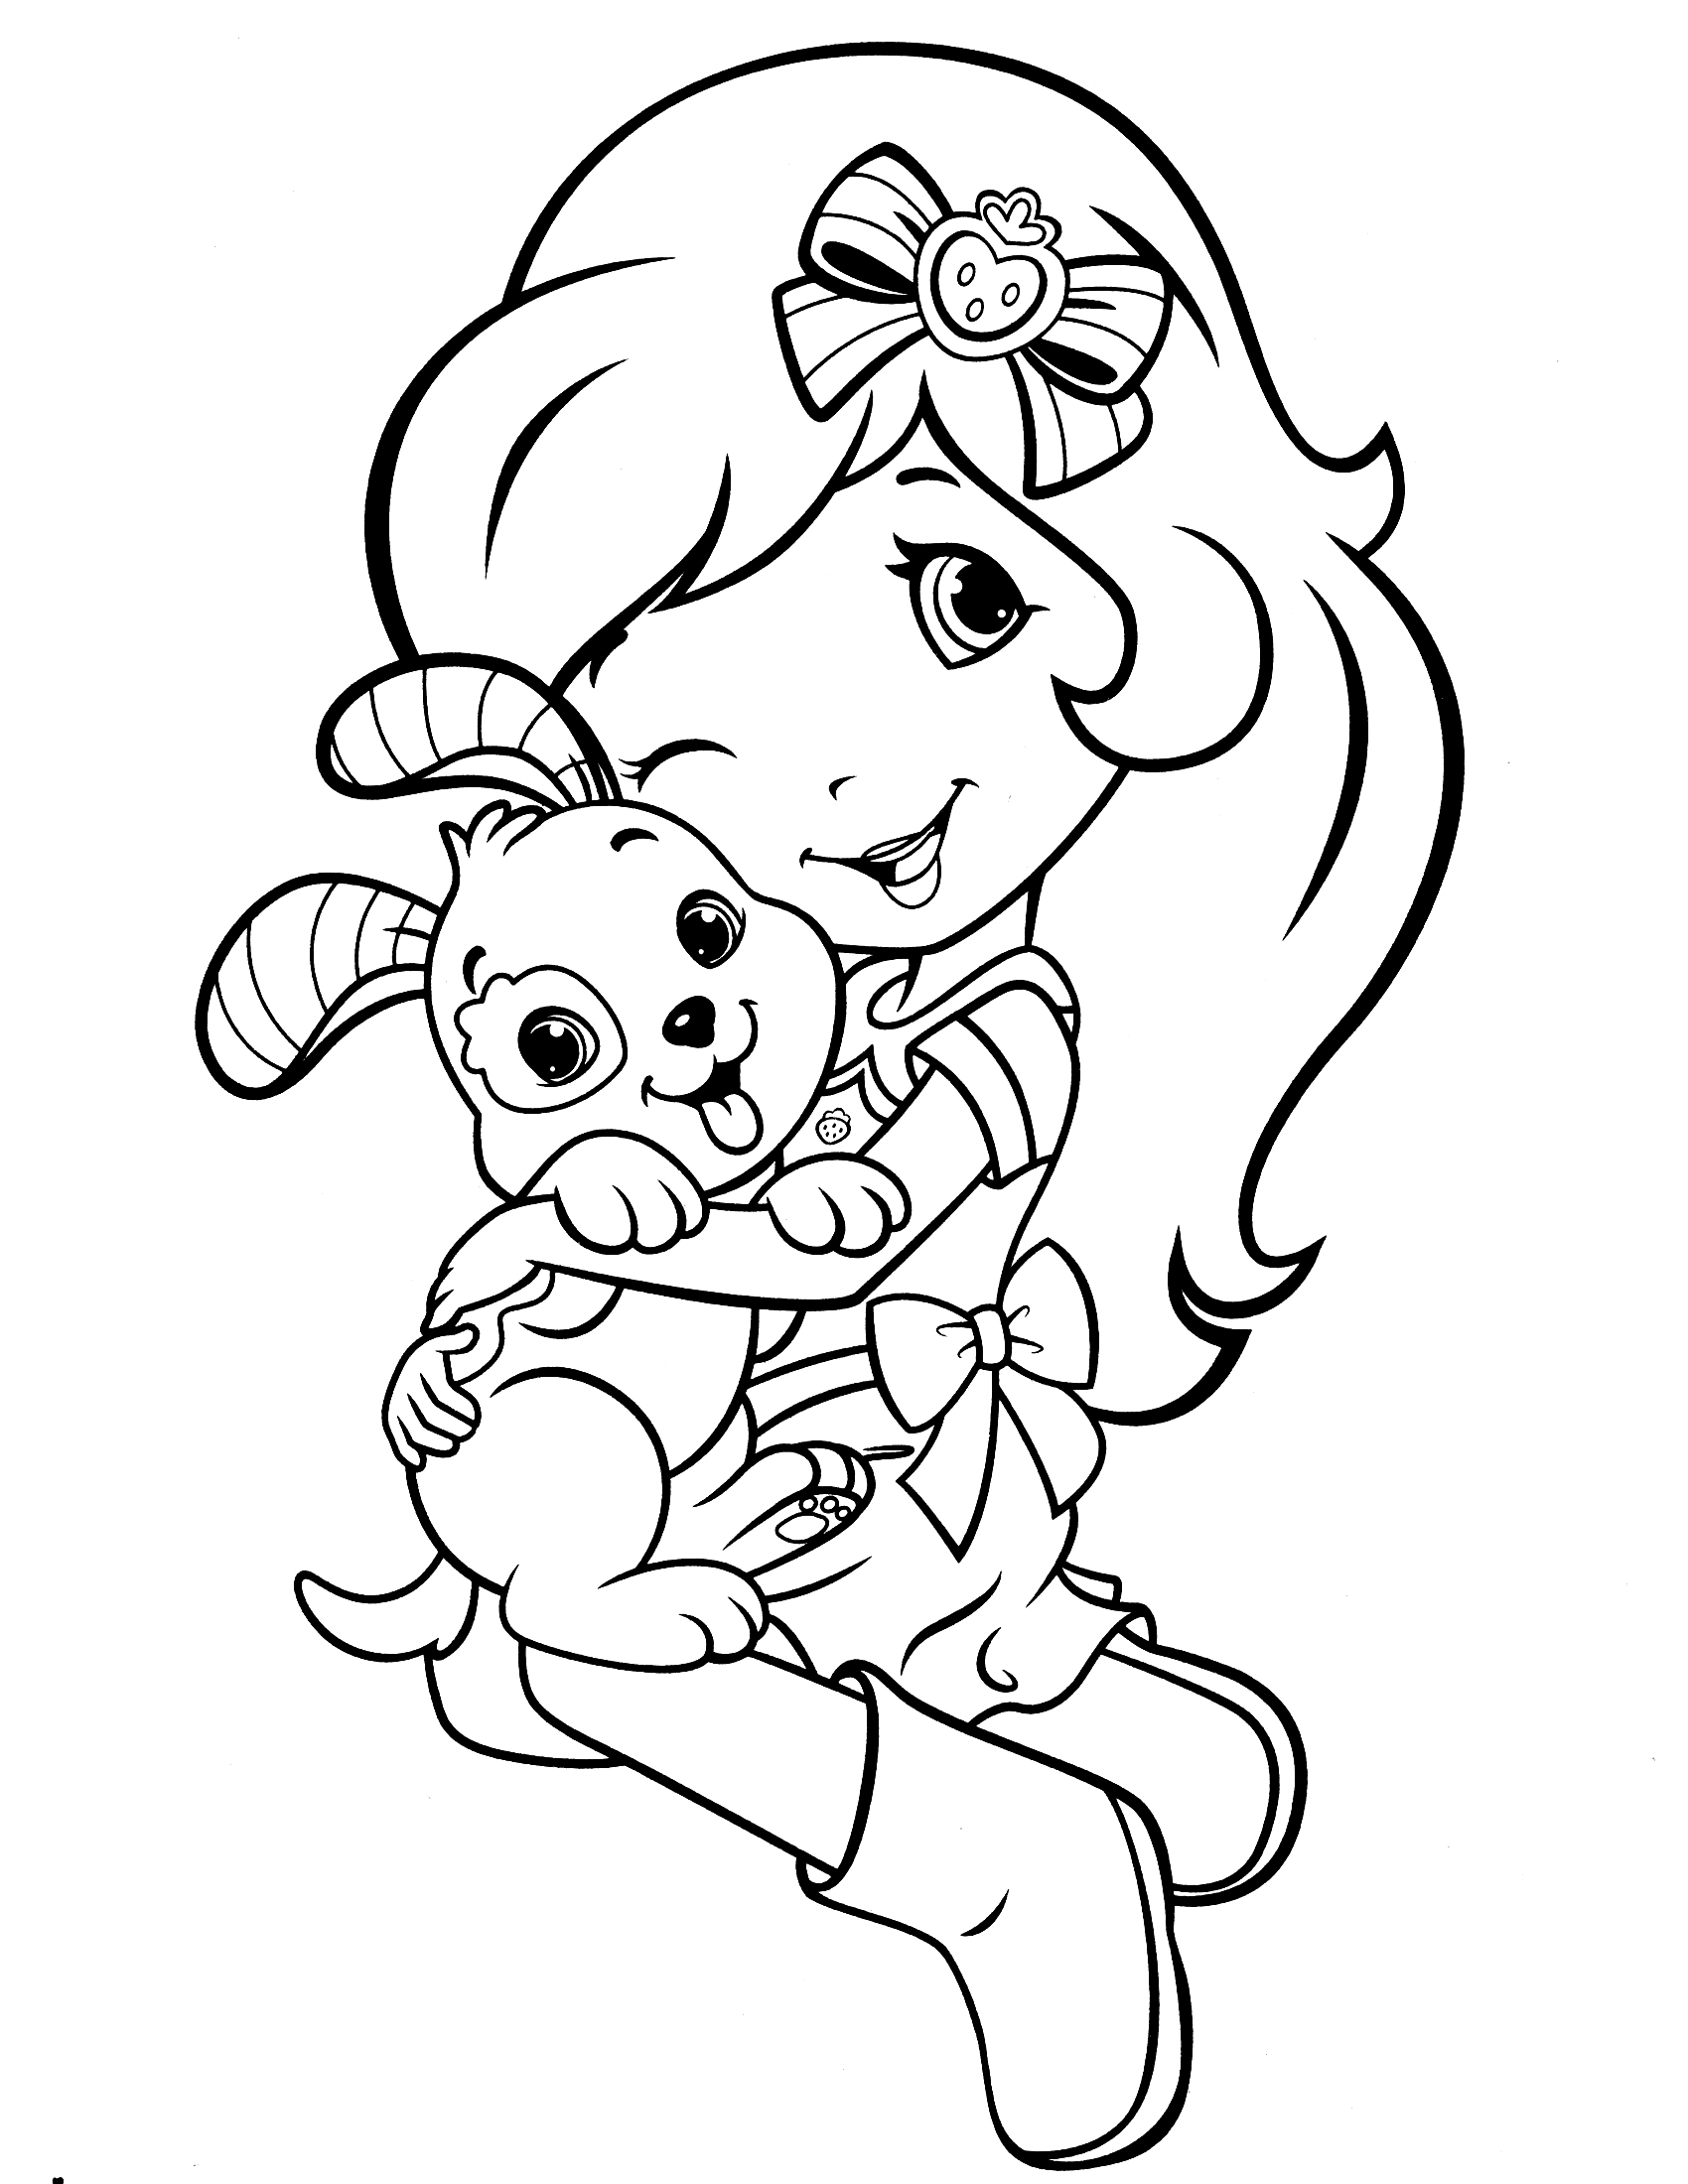 Strawberry Shortcake Coloring Pages Princess Strawberry Shortcake Coloring Pages At Getdrawings